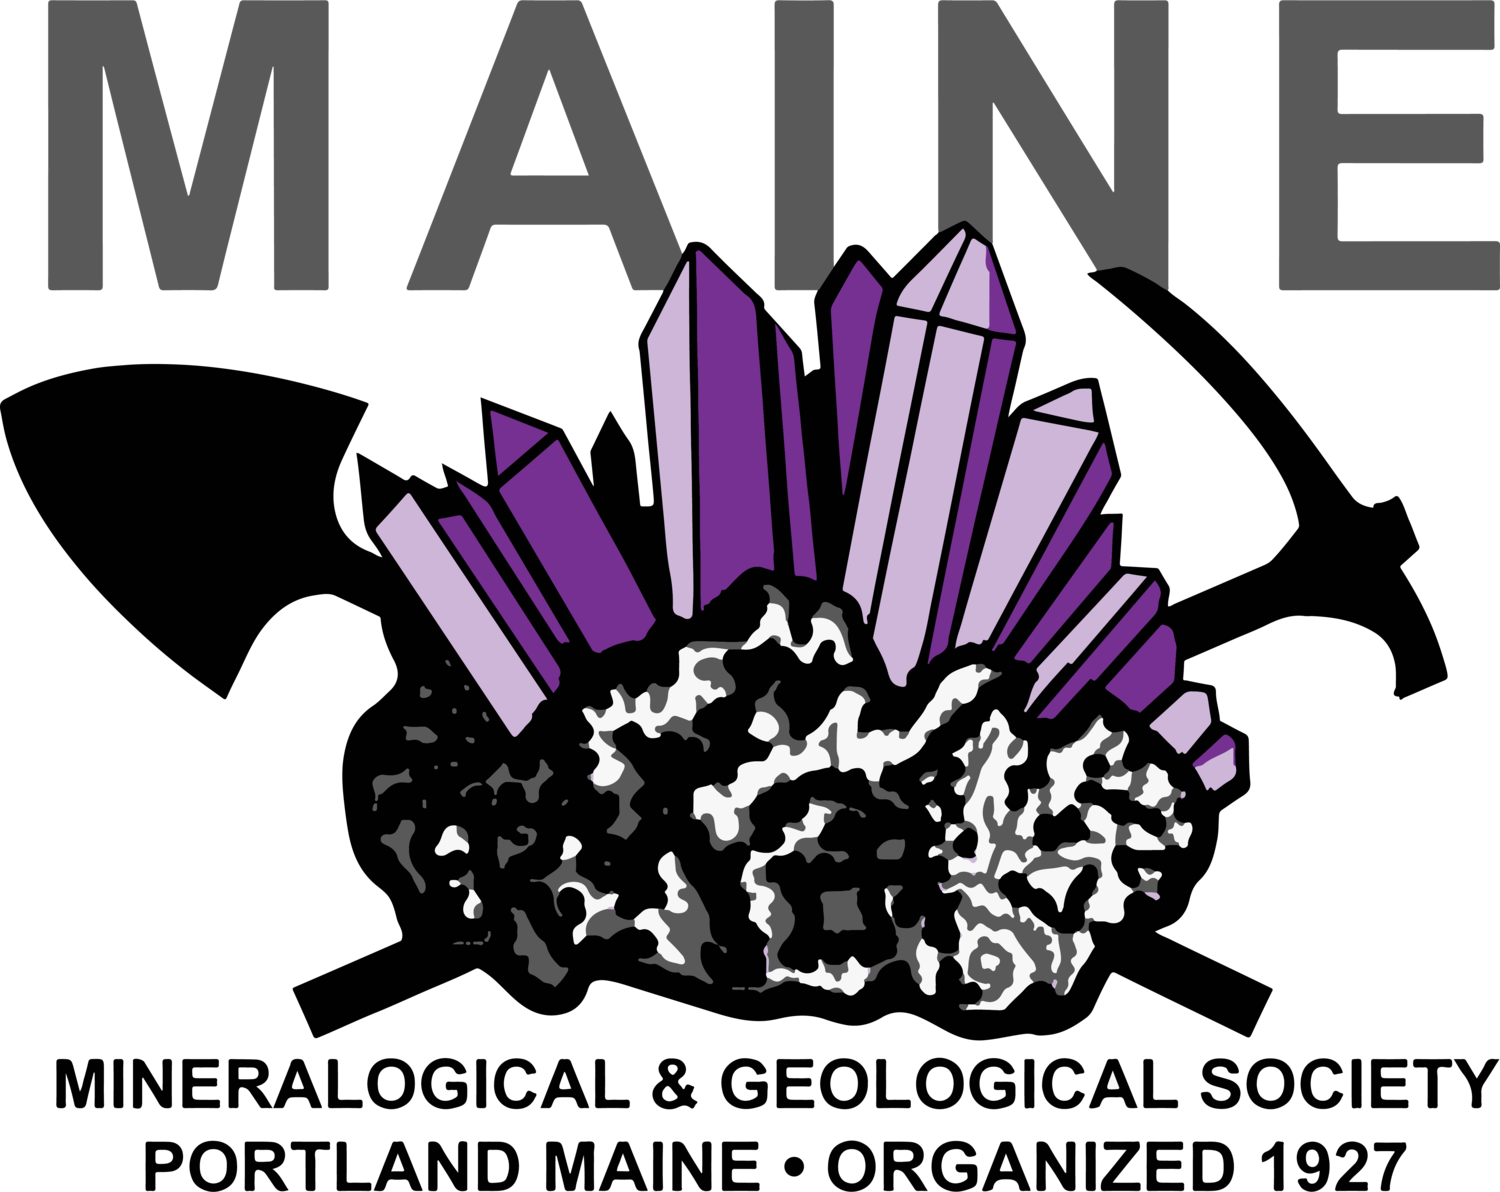 Club clipart club meeting. Maine mineralogical geological